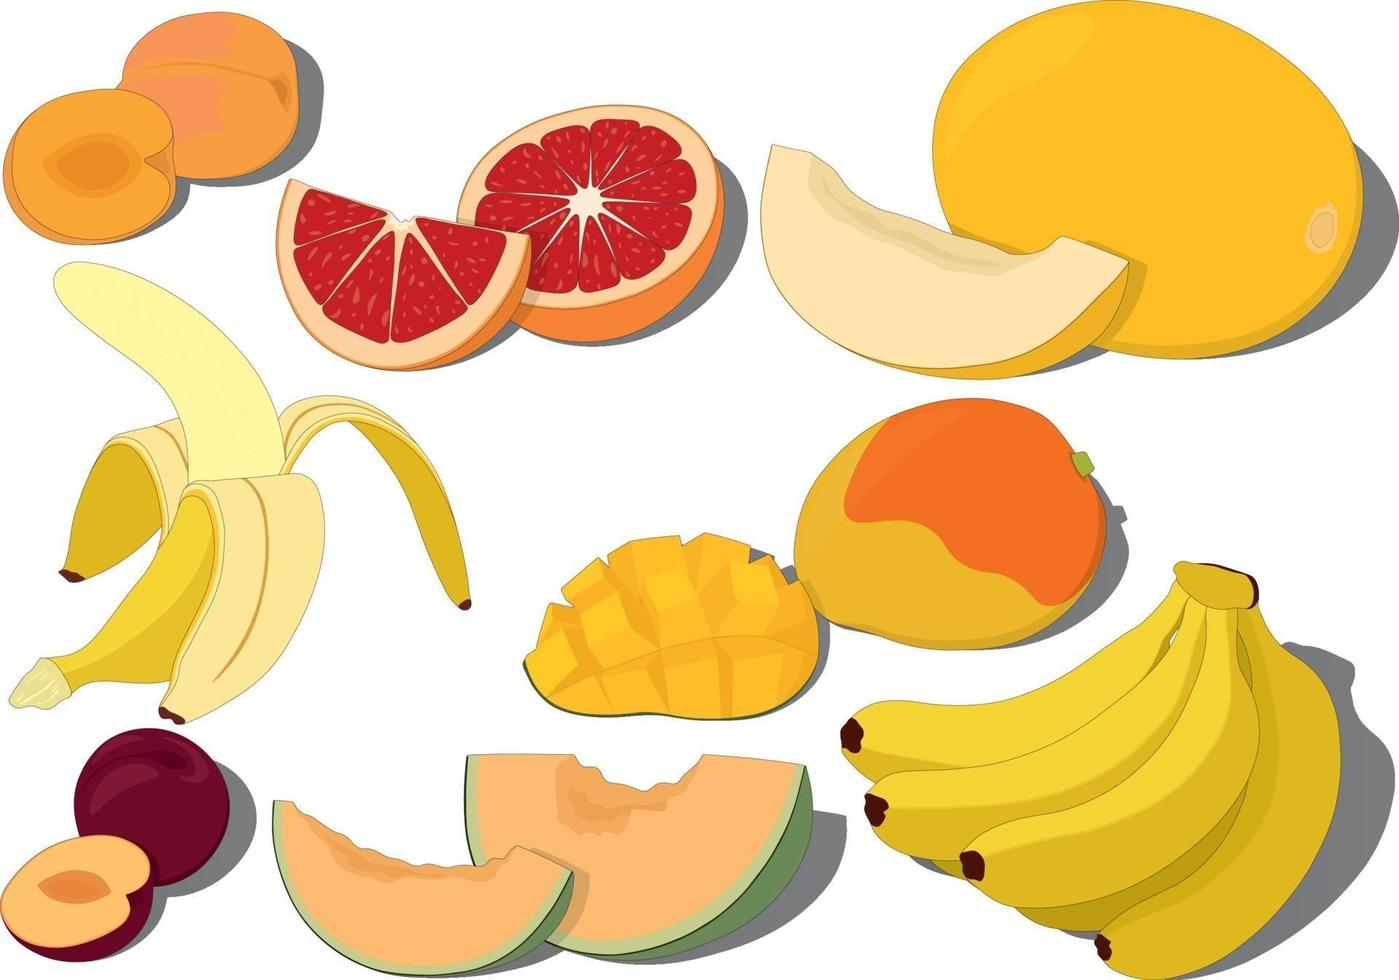 Sweet ripe fruits collection vector illustration